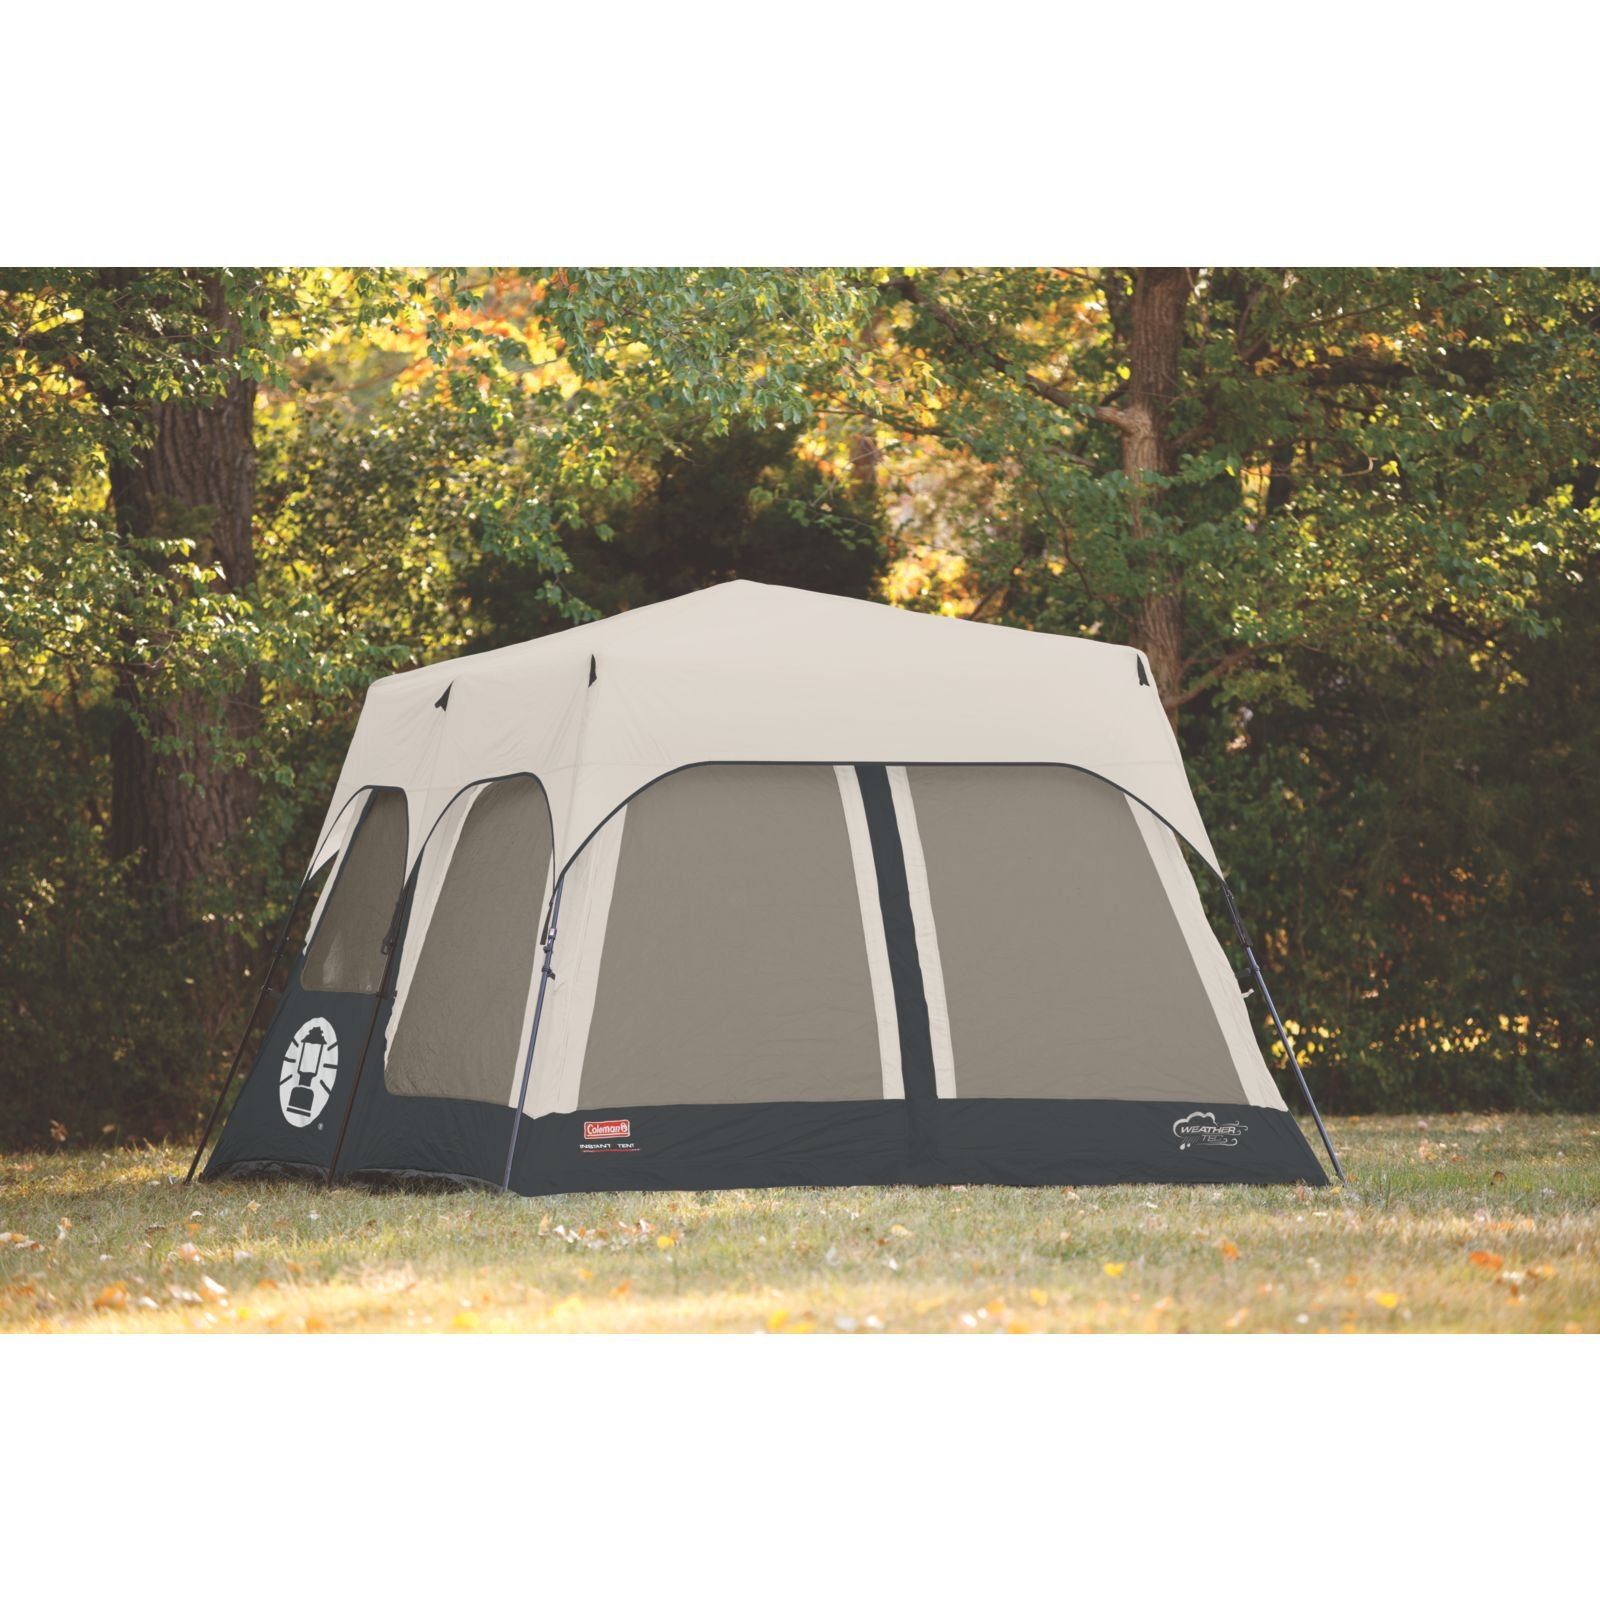 Coleman Accy Rainfly Instant 8 Person Tent Accessory, Black, 14x10-Feet